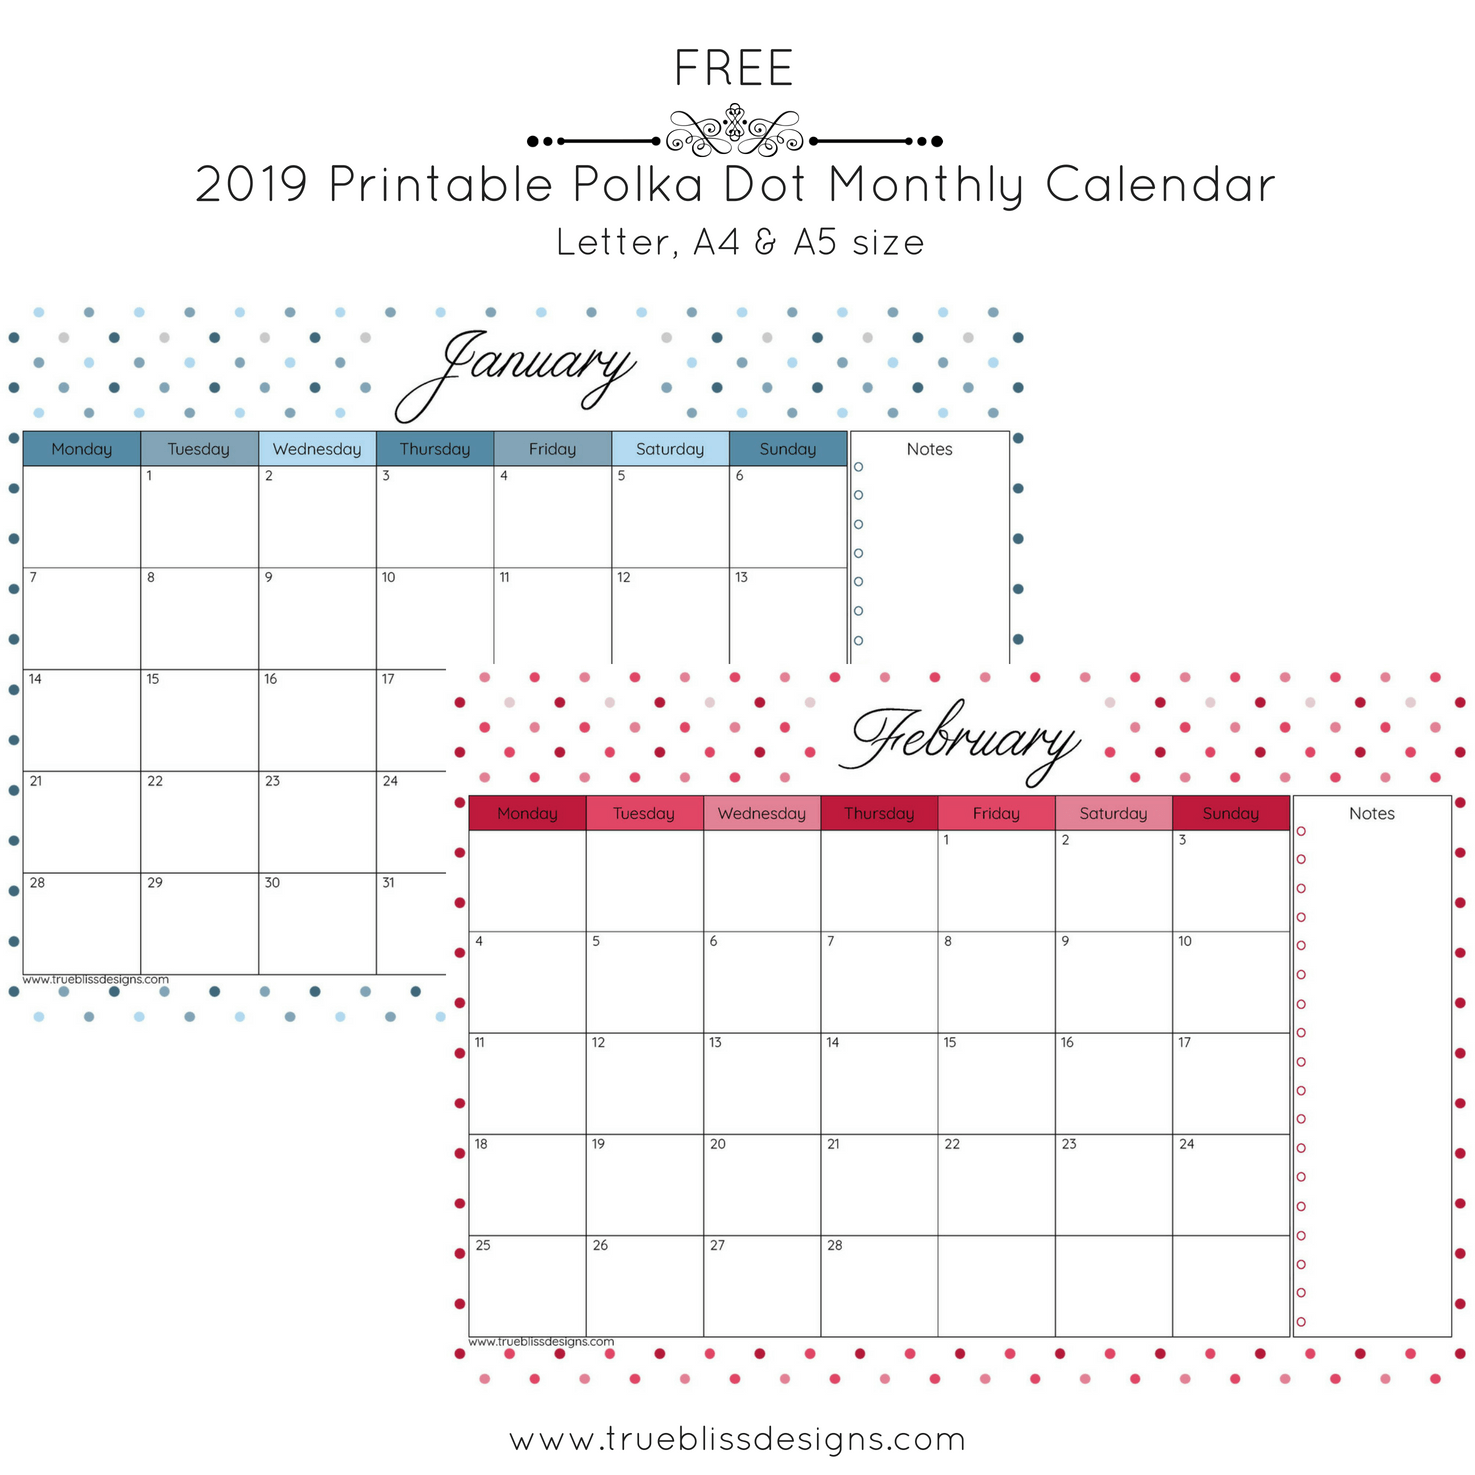 Get organised with this free 2019 printable calendar. Each month has a different polka dot design and is available in Letter, A4 and A5 size. For more freebies, visit www.trueblissdesigns.com.